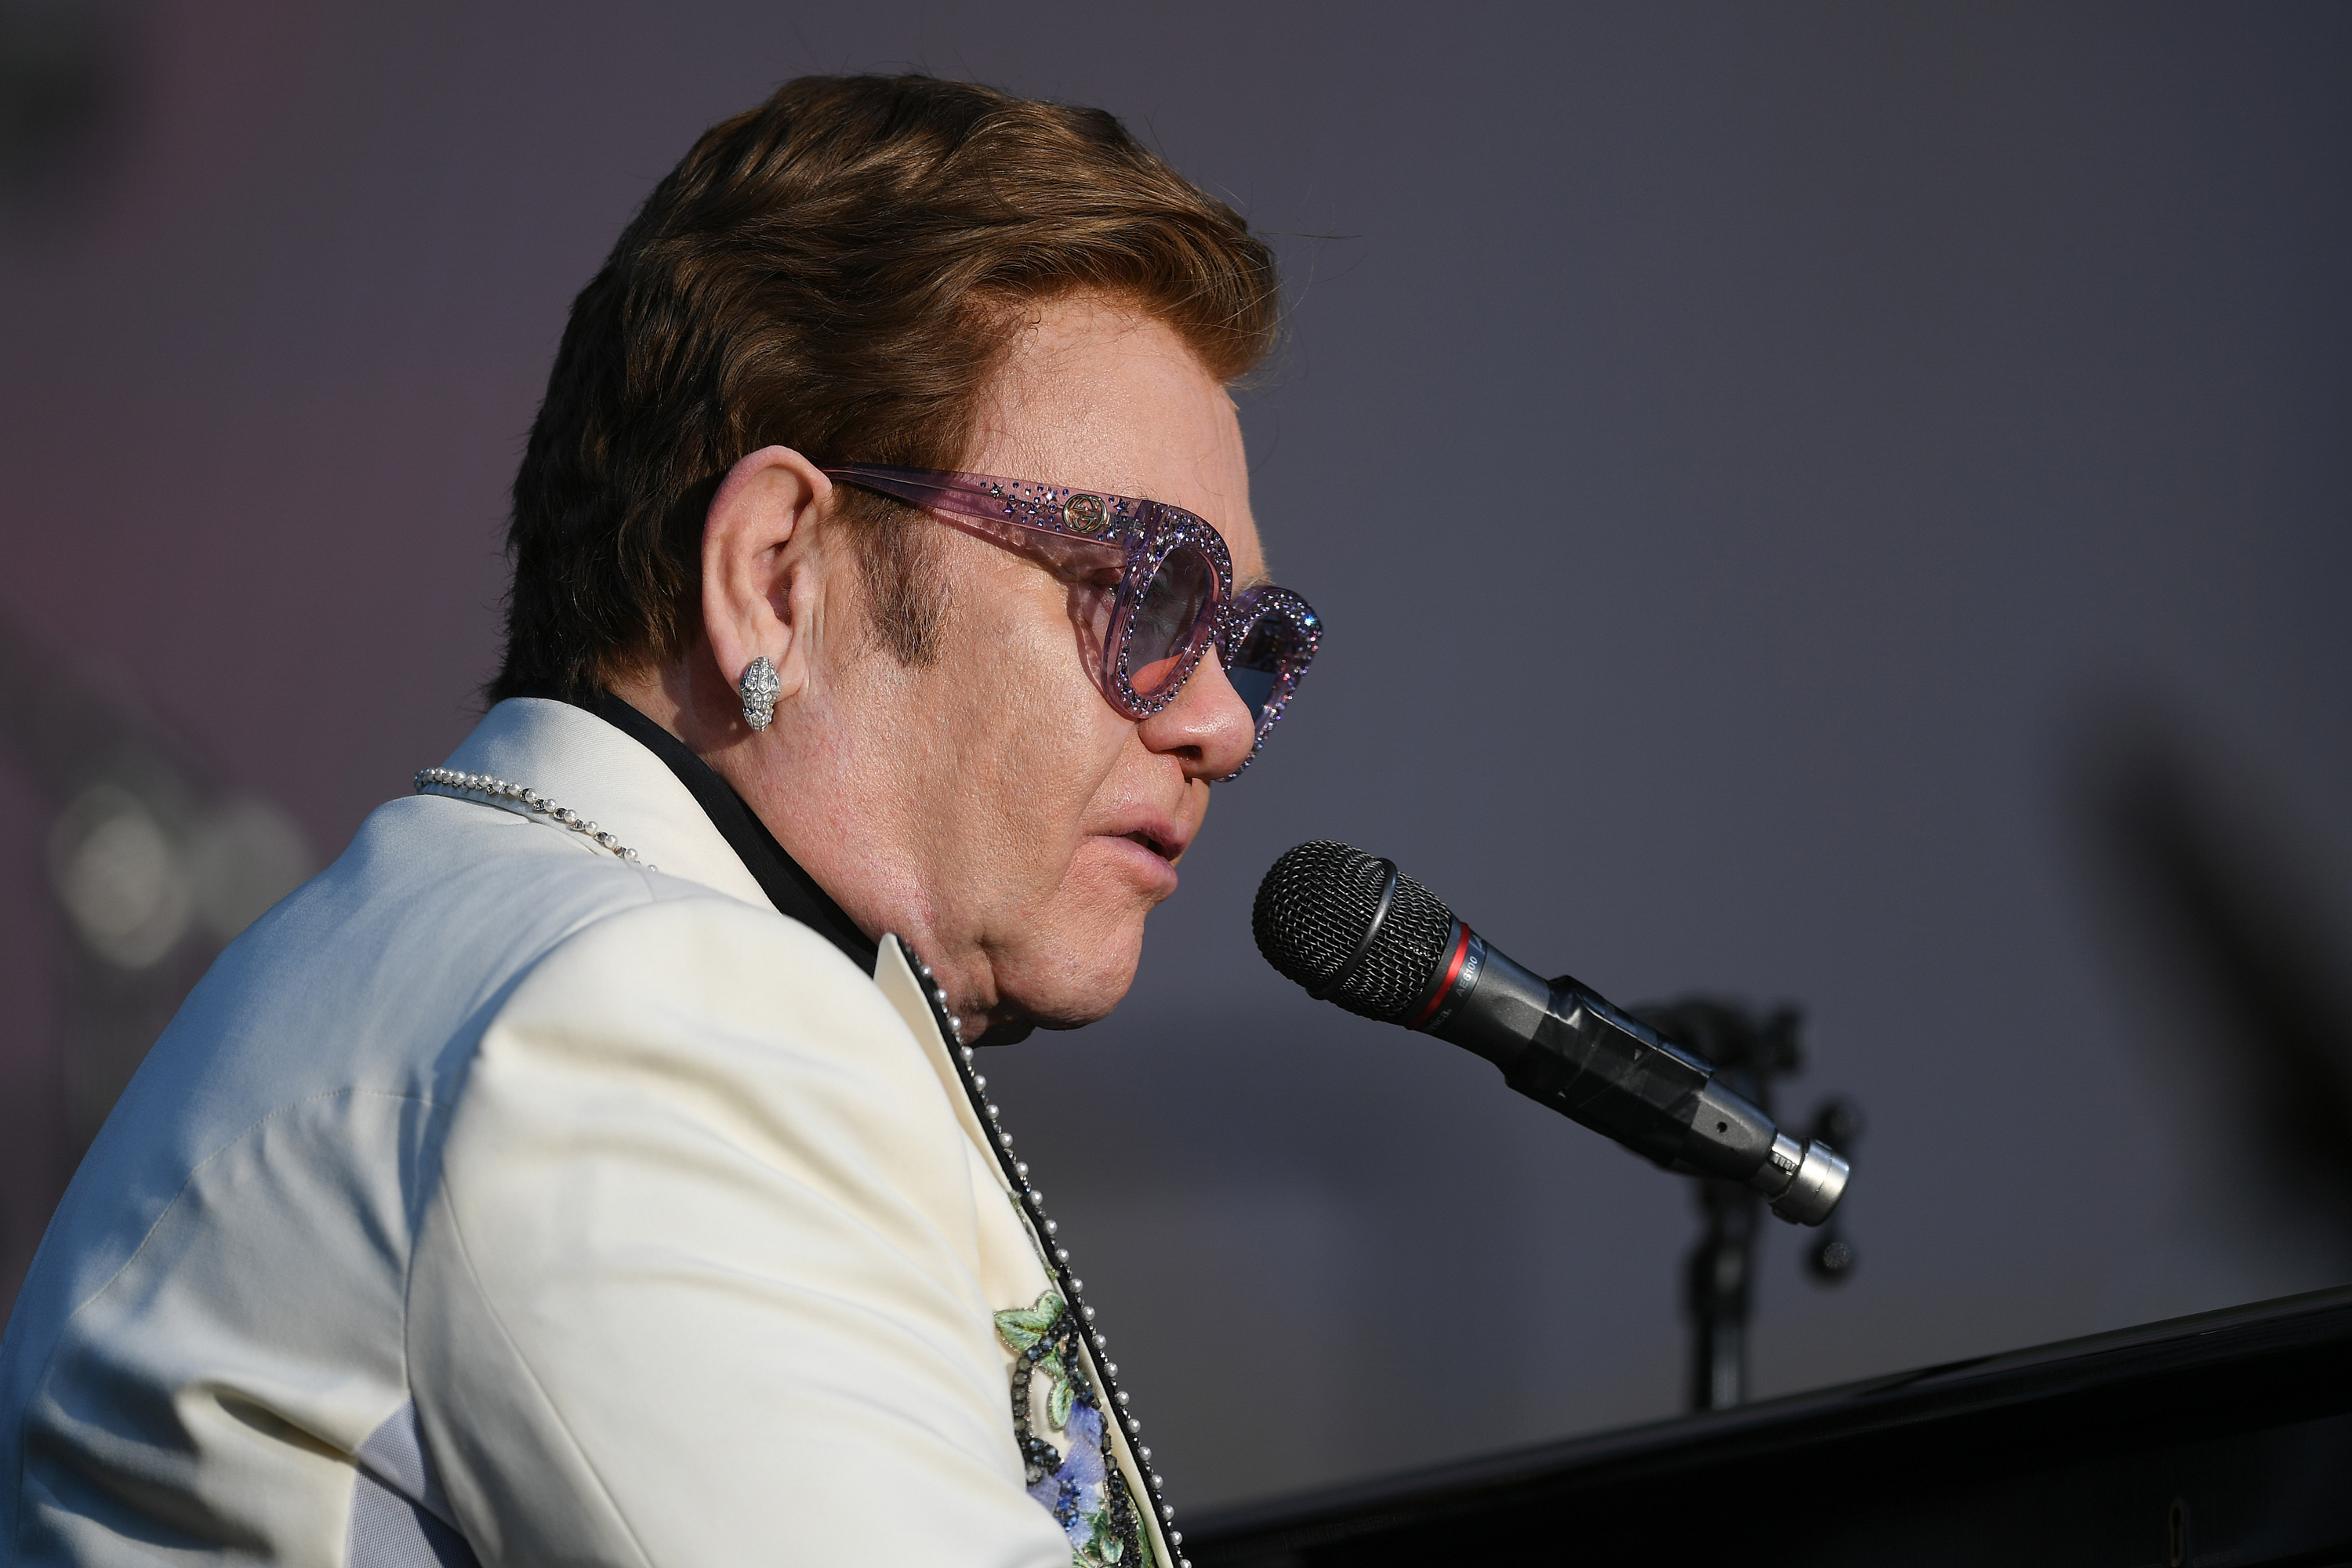 Elton John, celebrating 30 years of sobriety, says if he had never asked for help, he'd be dead